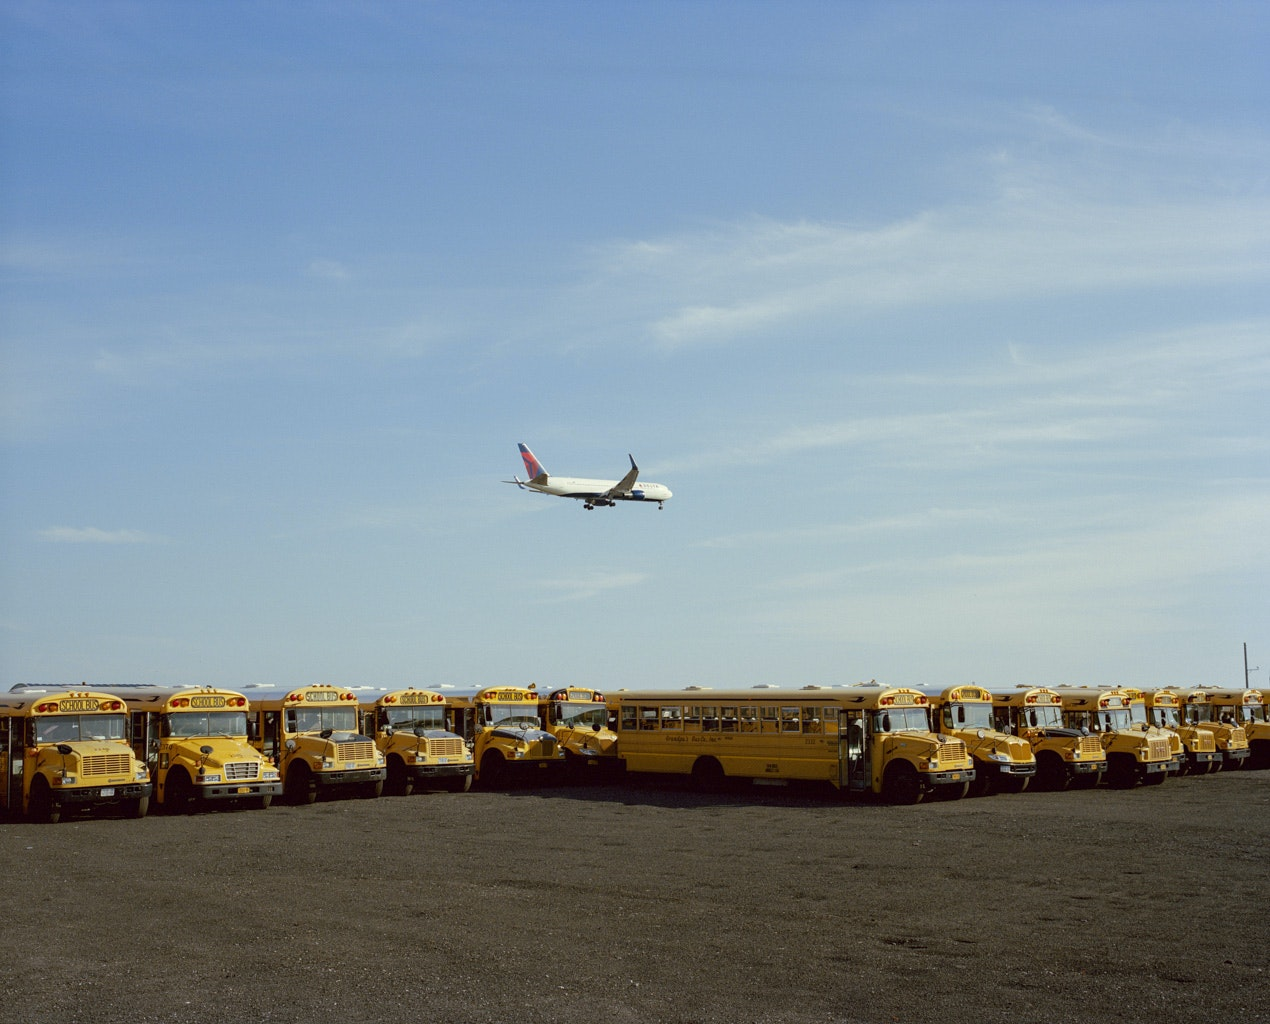 A plane leaving John F. Kennedy International Airport flies above a school bus parking lot on Long Island, New York.